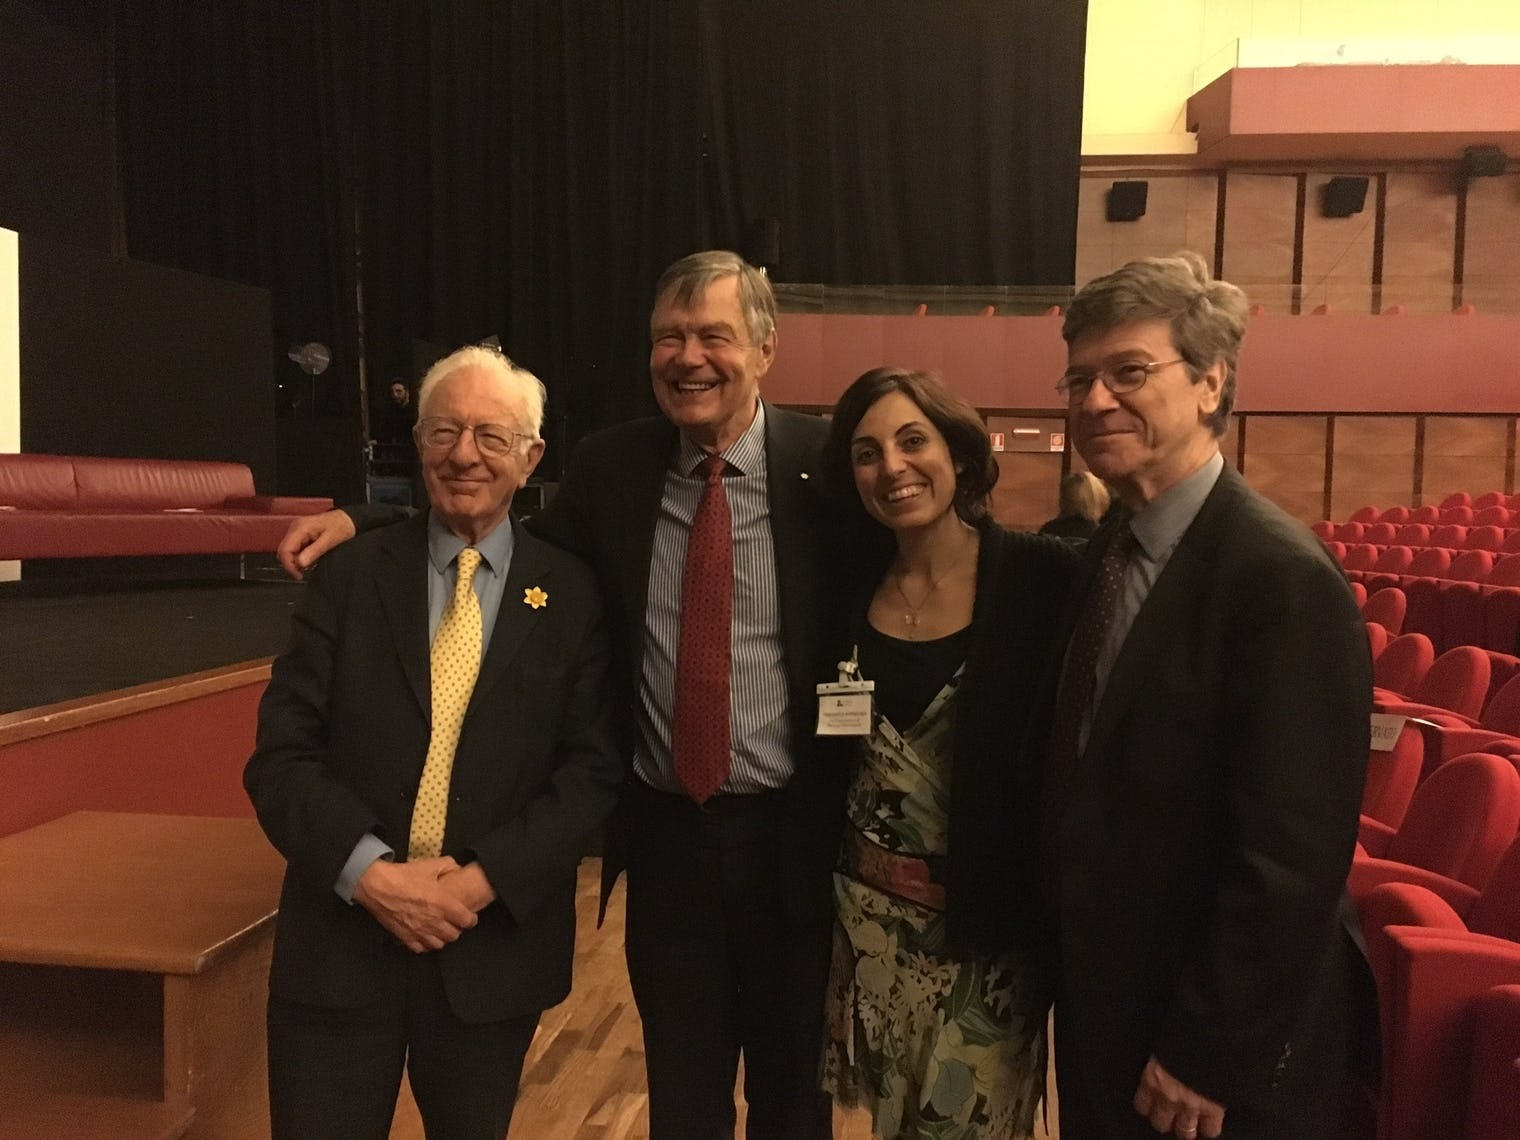 Richard Layard, John Helliwell, and Jeffrey Sachs — the original editors of the World Happiness Report — along with public speaker and former global director of the Coca-Cola Happiness Institute Silvia García Barnechea.World Happiness Report